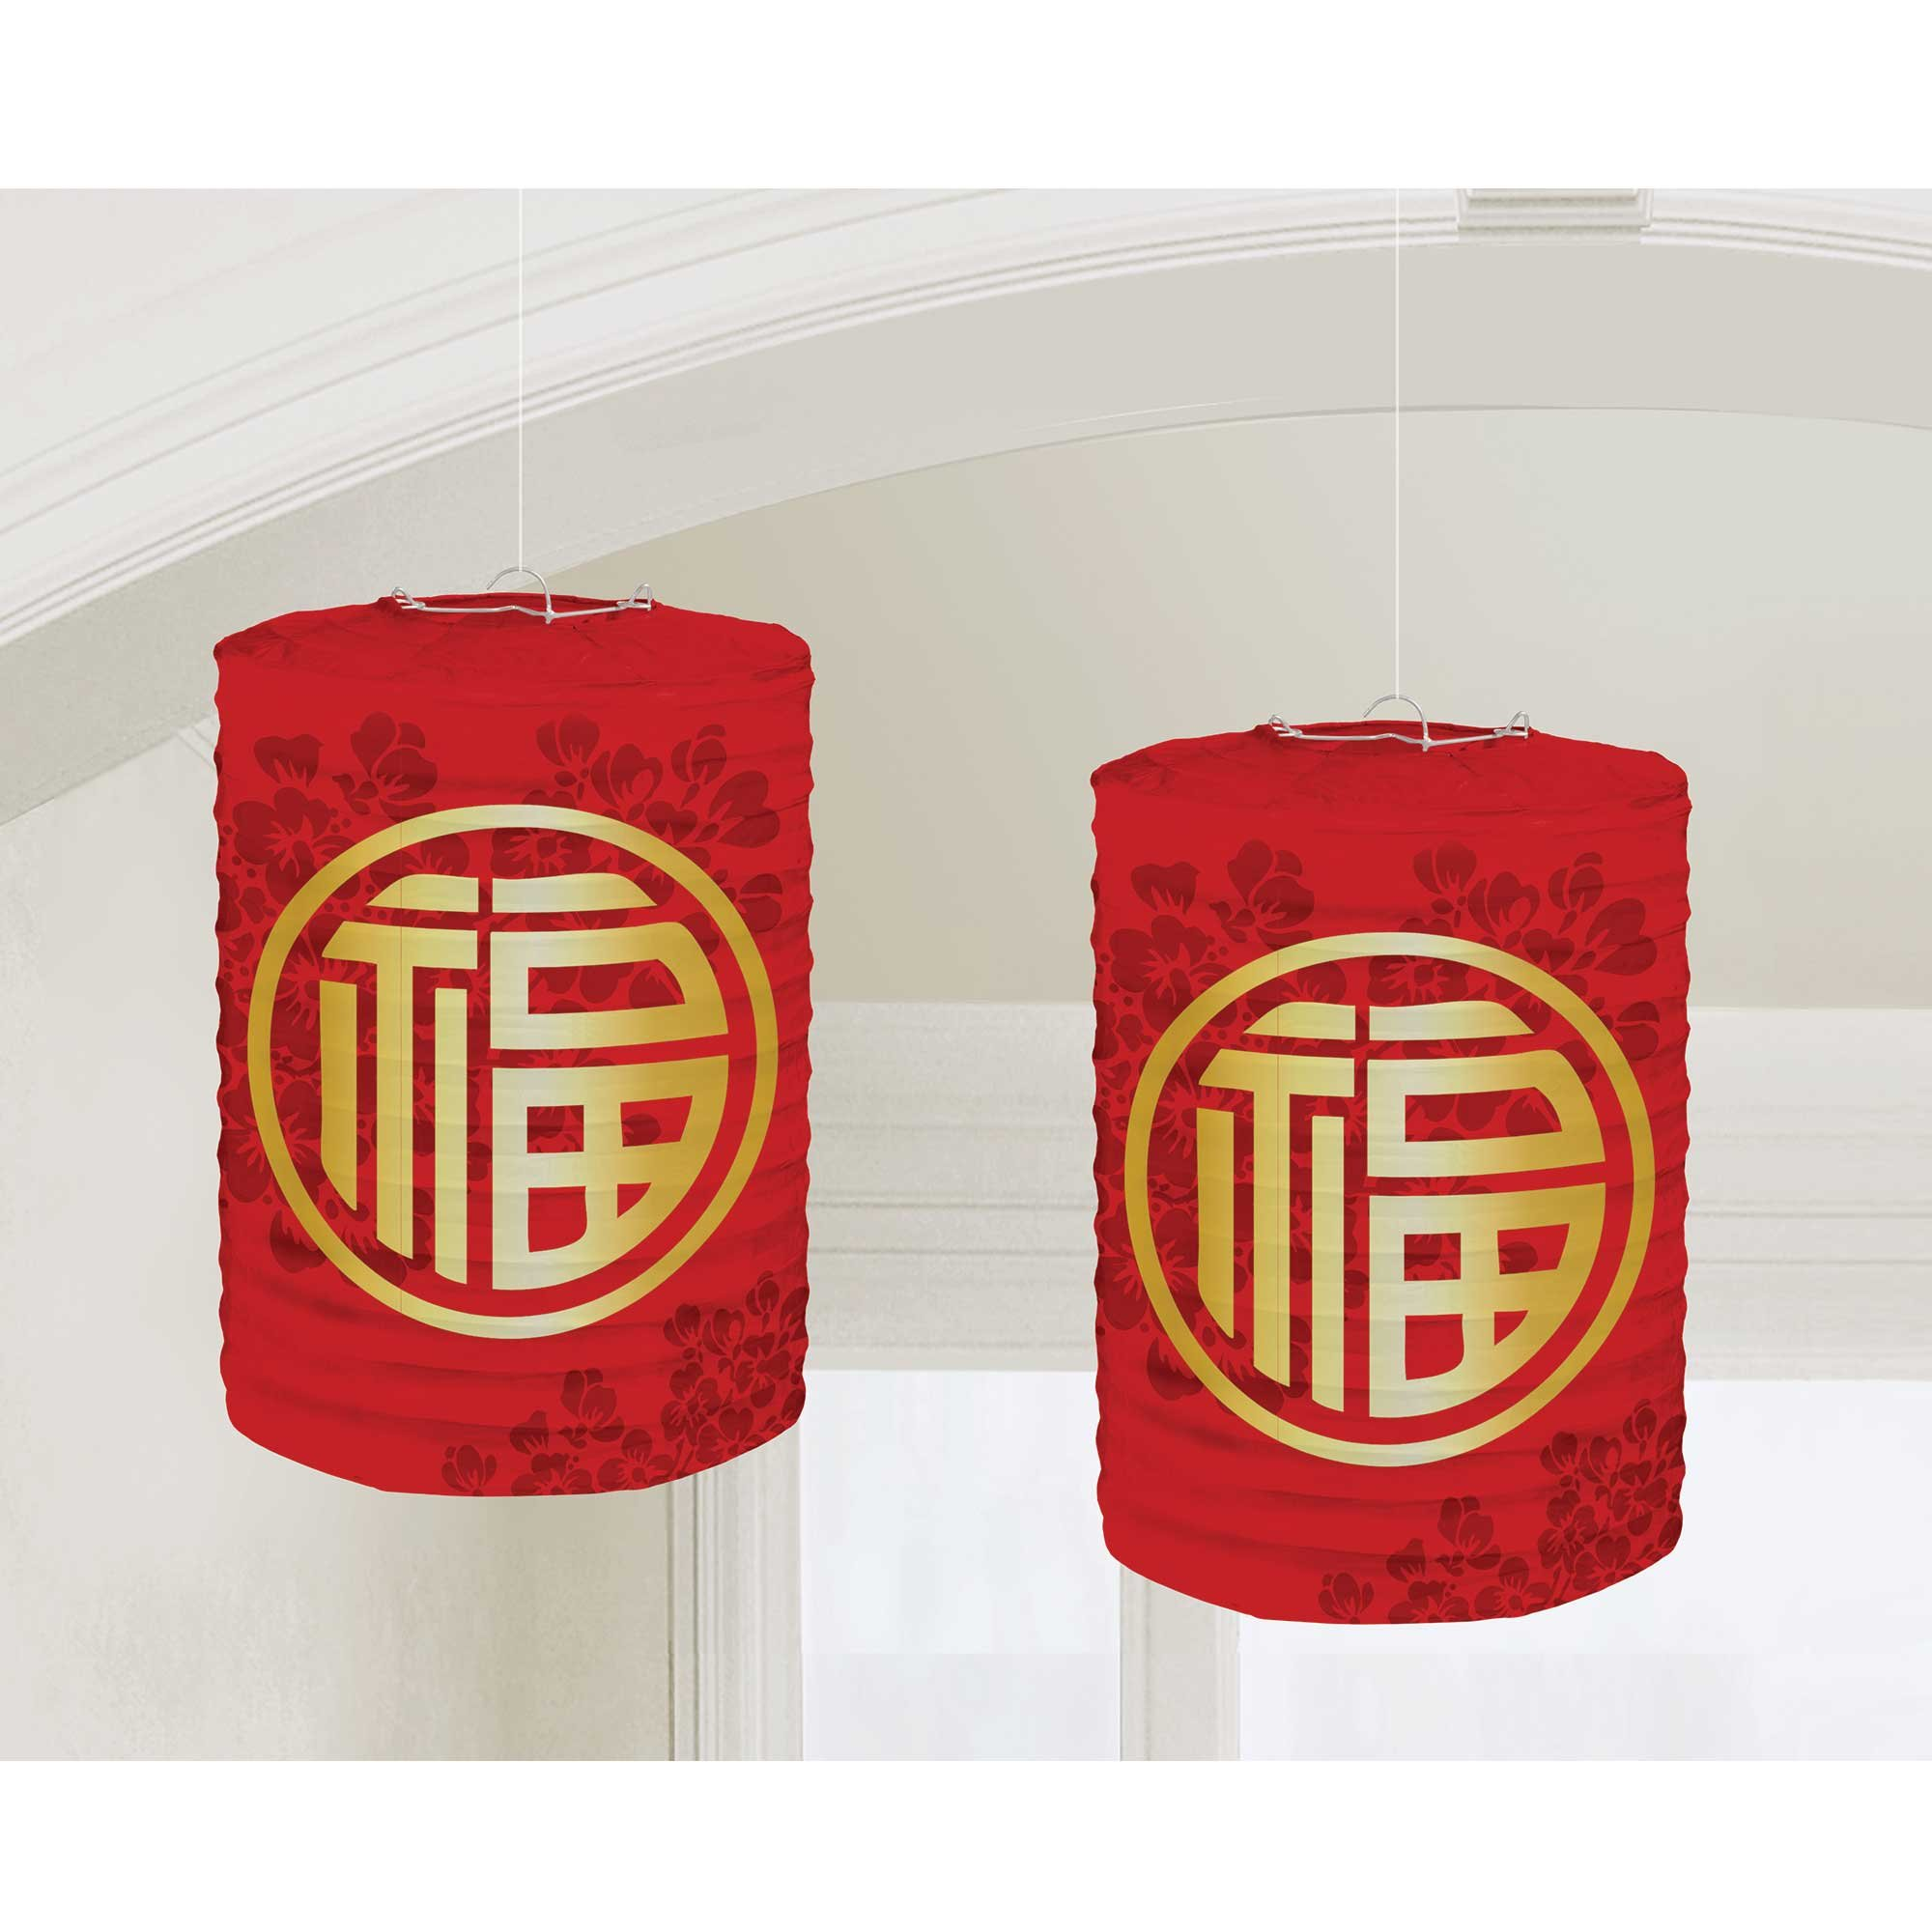 Chinese New Year Printed Paper Lanterns